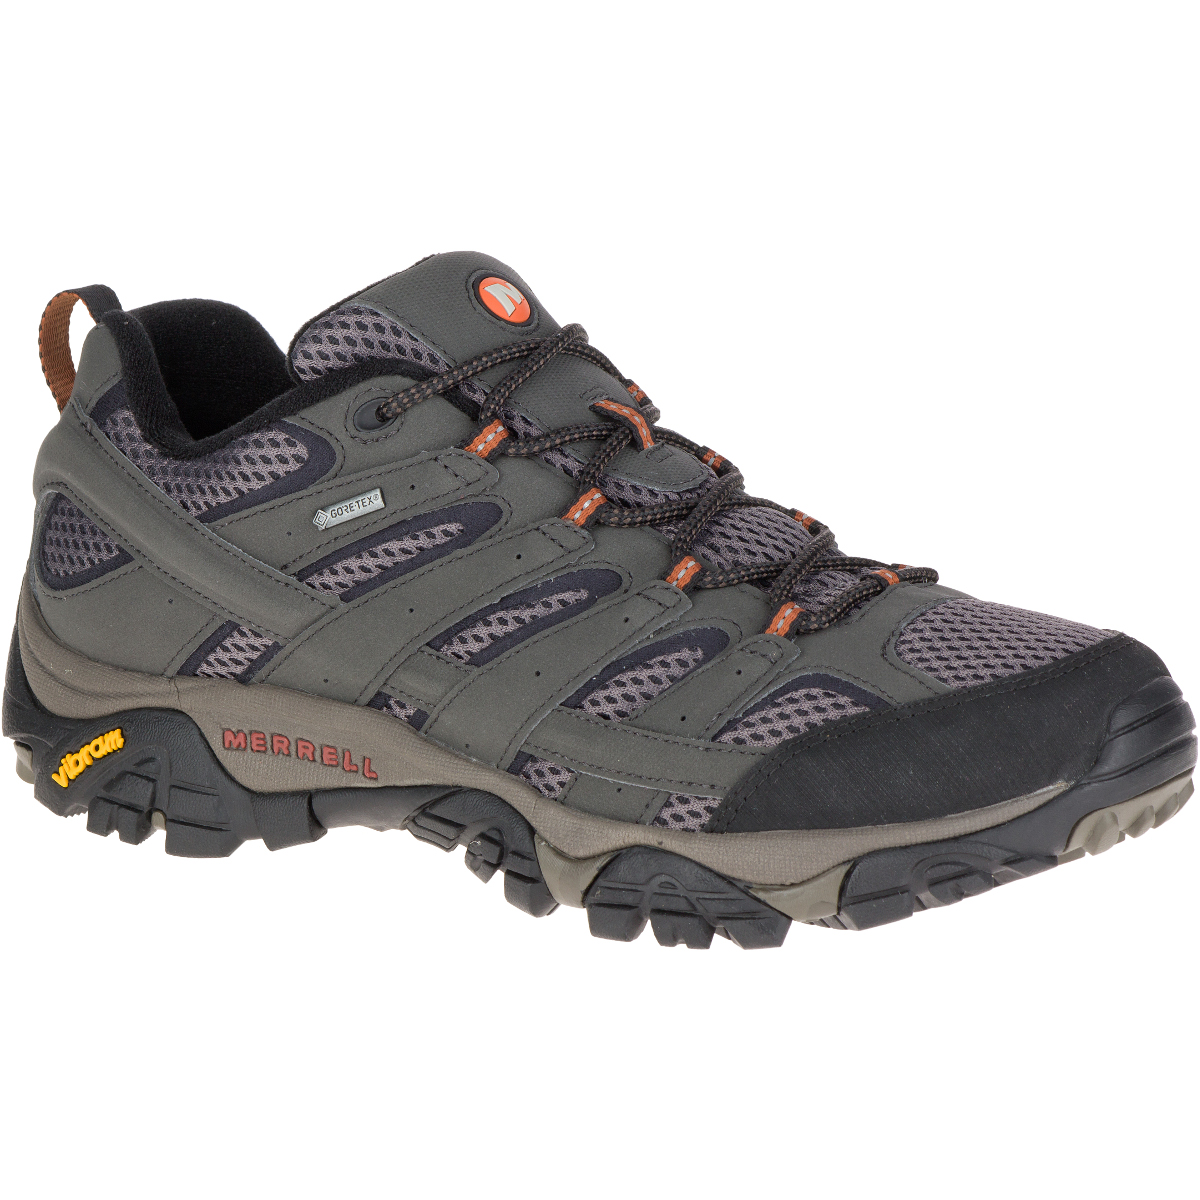 Merrell Men's Moab 2 Gore-Tex Waterproof Hiking Shoes, Beluga - Black, 11